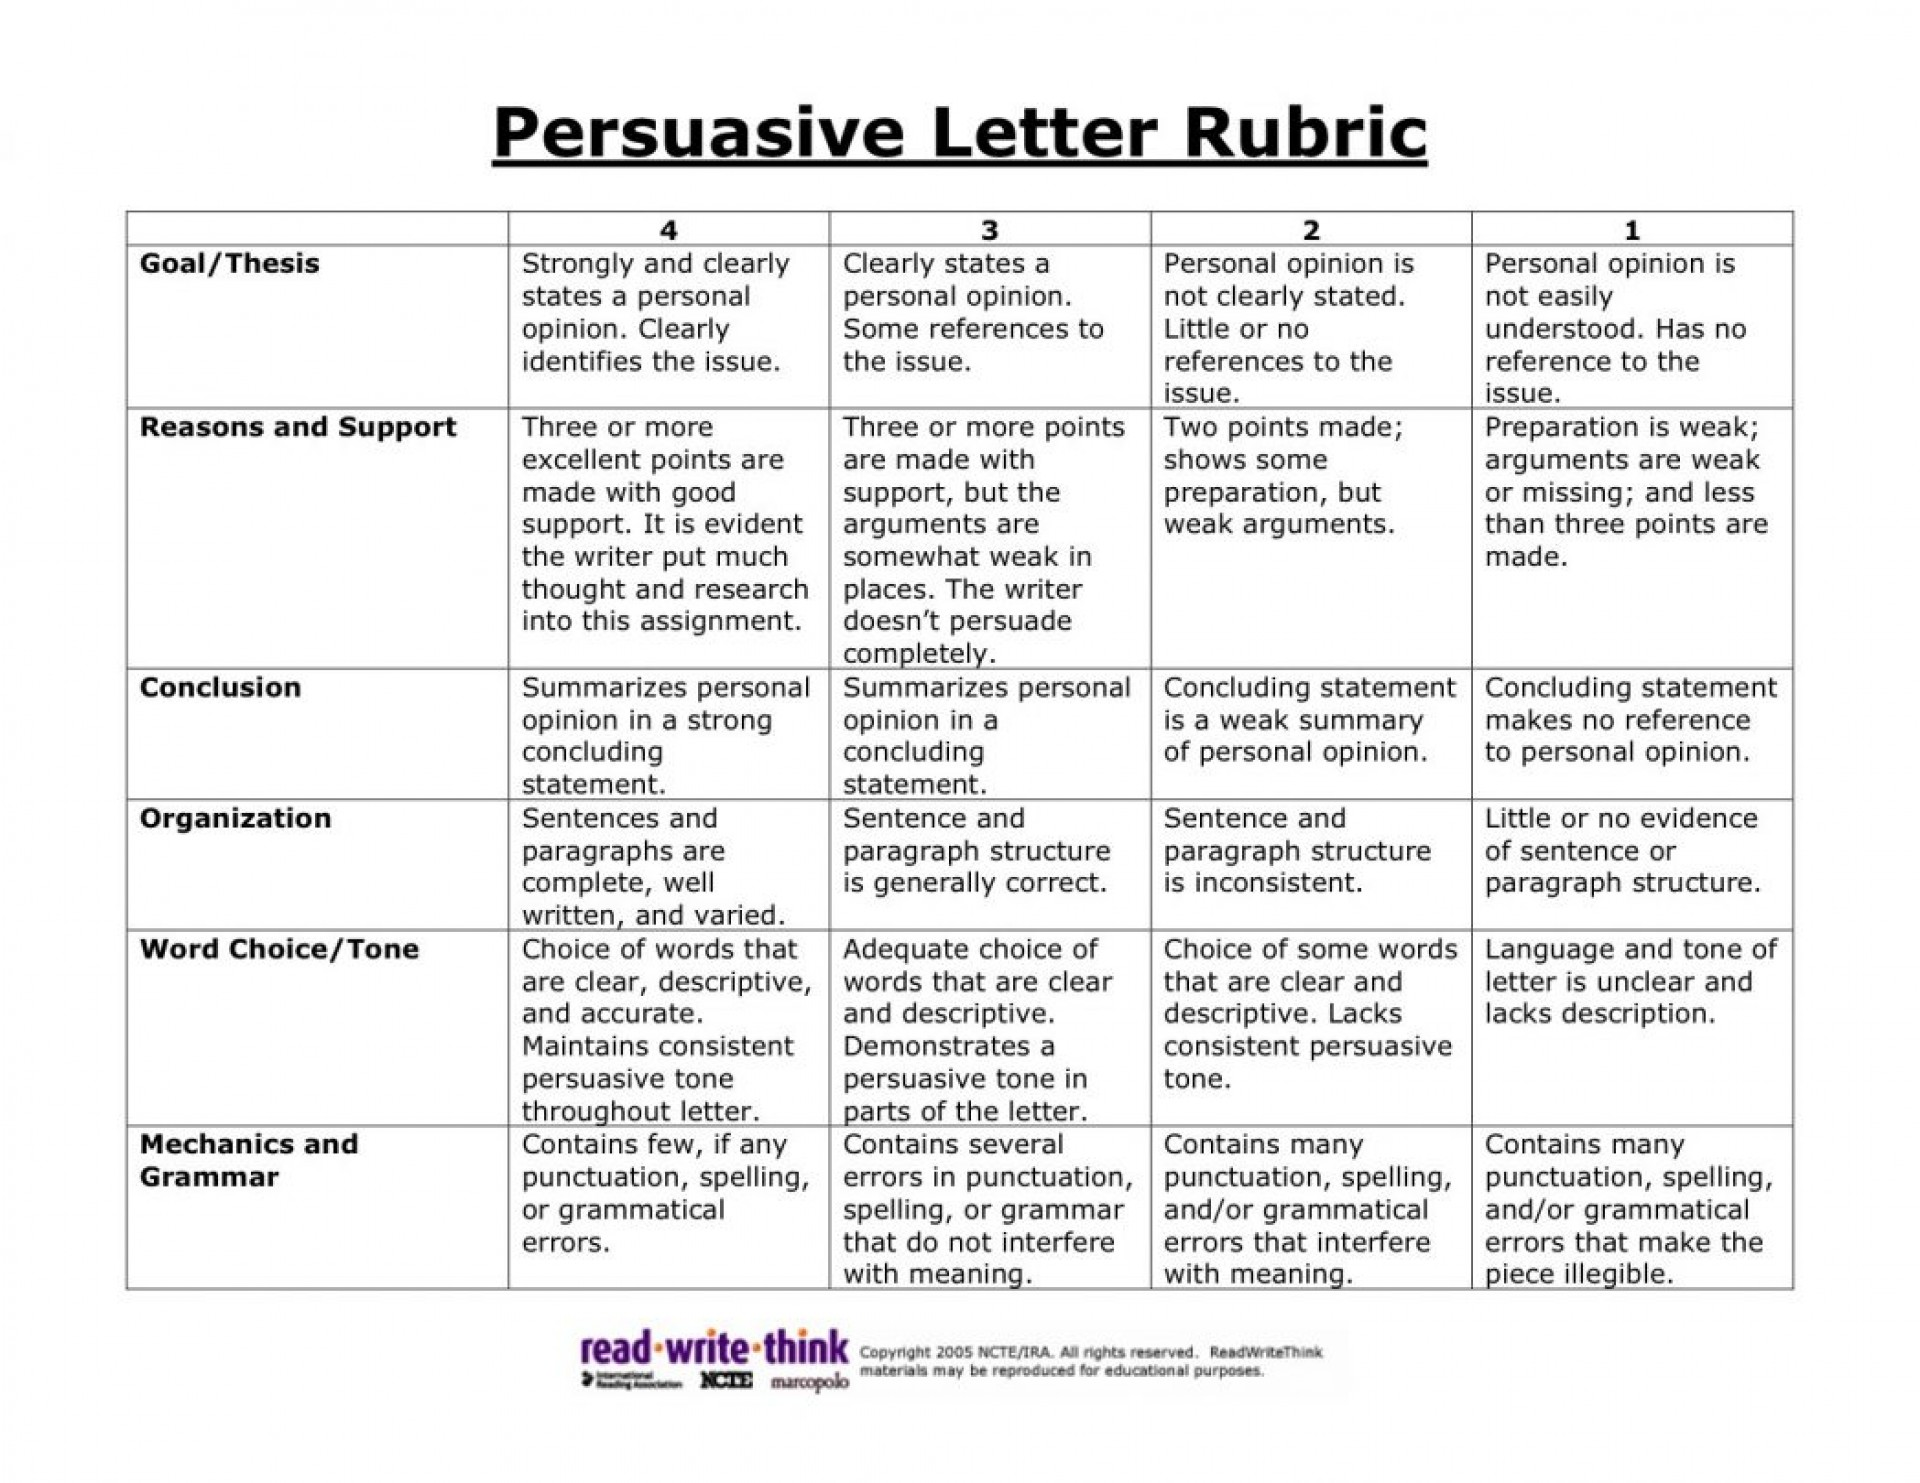 015 Persuasive Letter Example Grade Saveay Rubric For How To Write 4th Editing Sampl Expository Good Informative Narrative Texas Opinion Literary Paragraph 1048x810 Stunning Essay Argumentative 10 8th Doc Middle School Pdf 1920